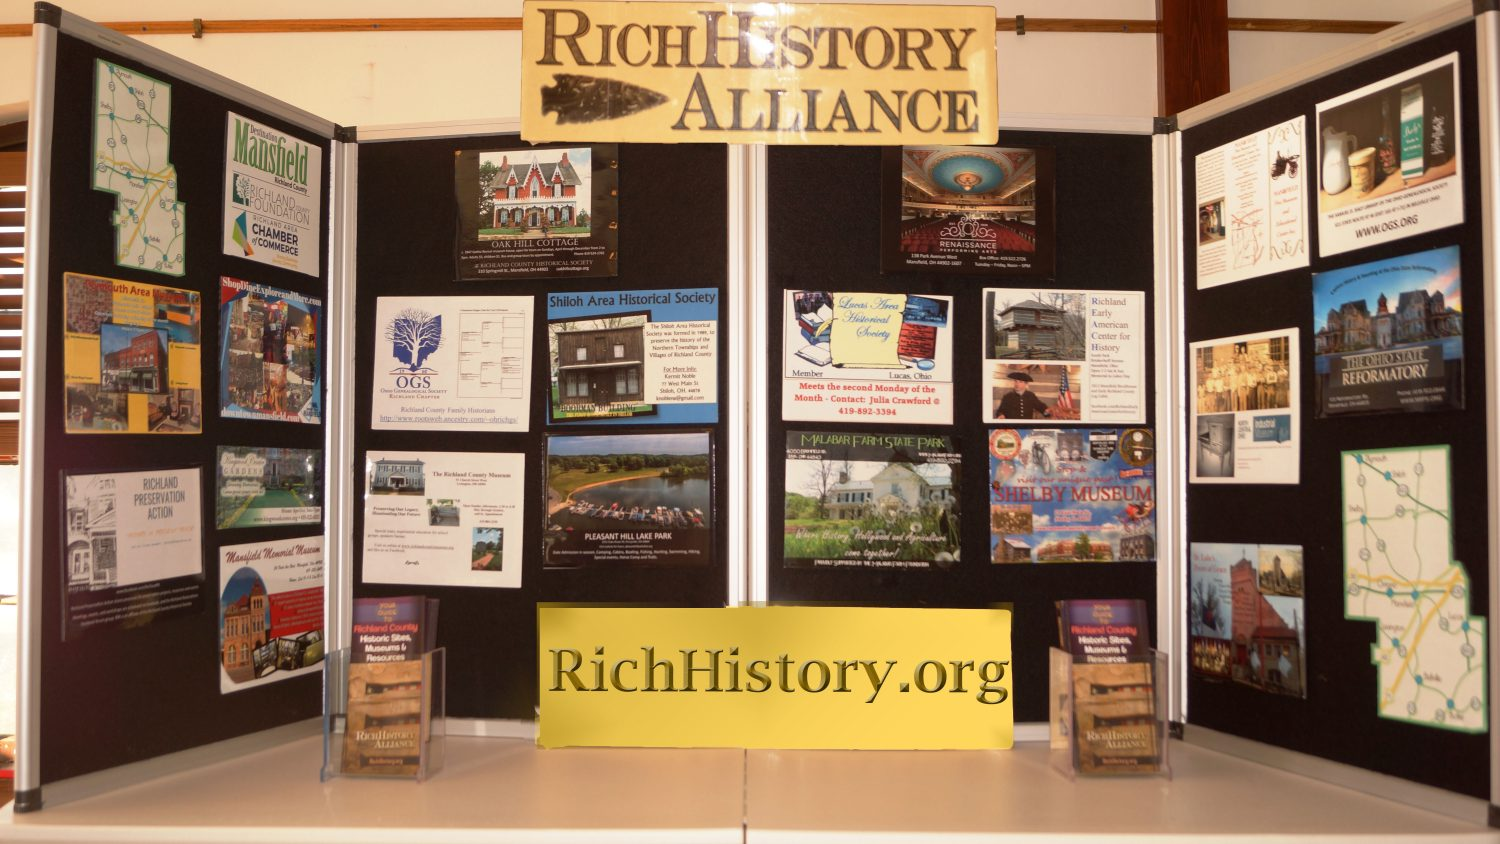 RichHistory Alliance